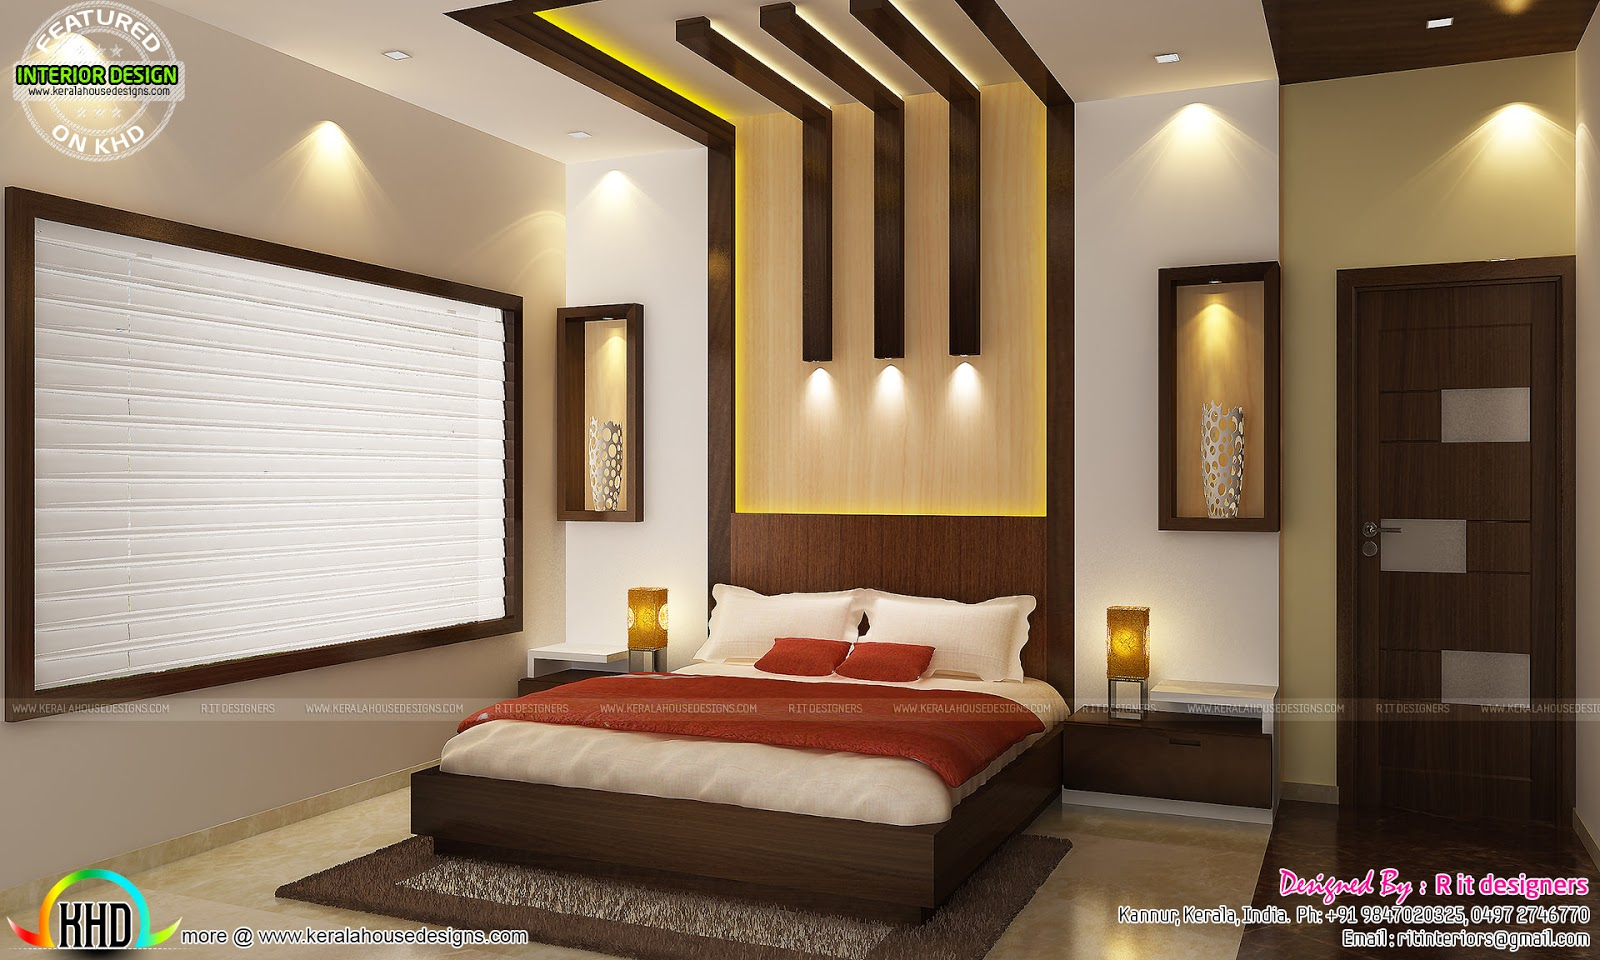 Kitchen living bedroom dining interior decor kerala for Interior design ideas